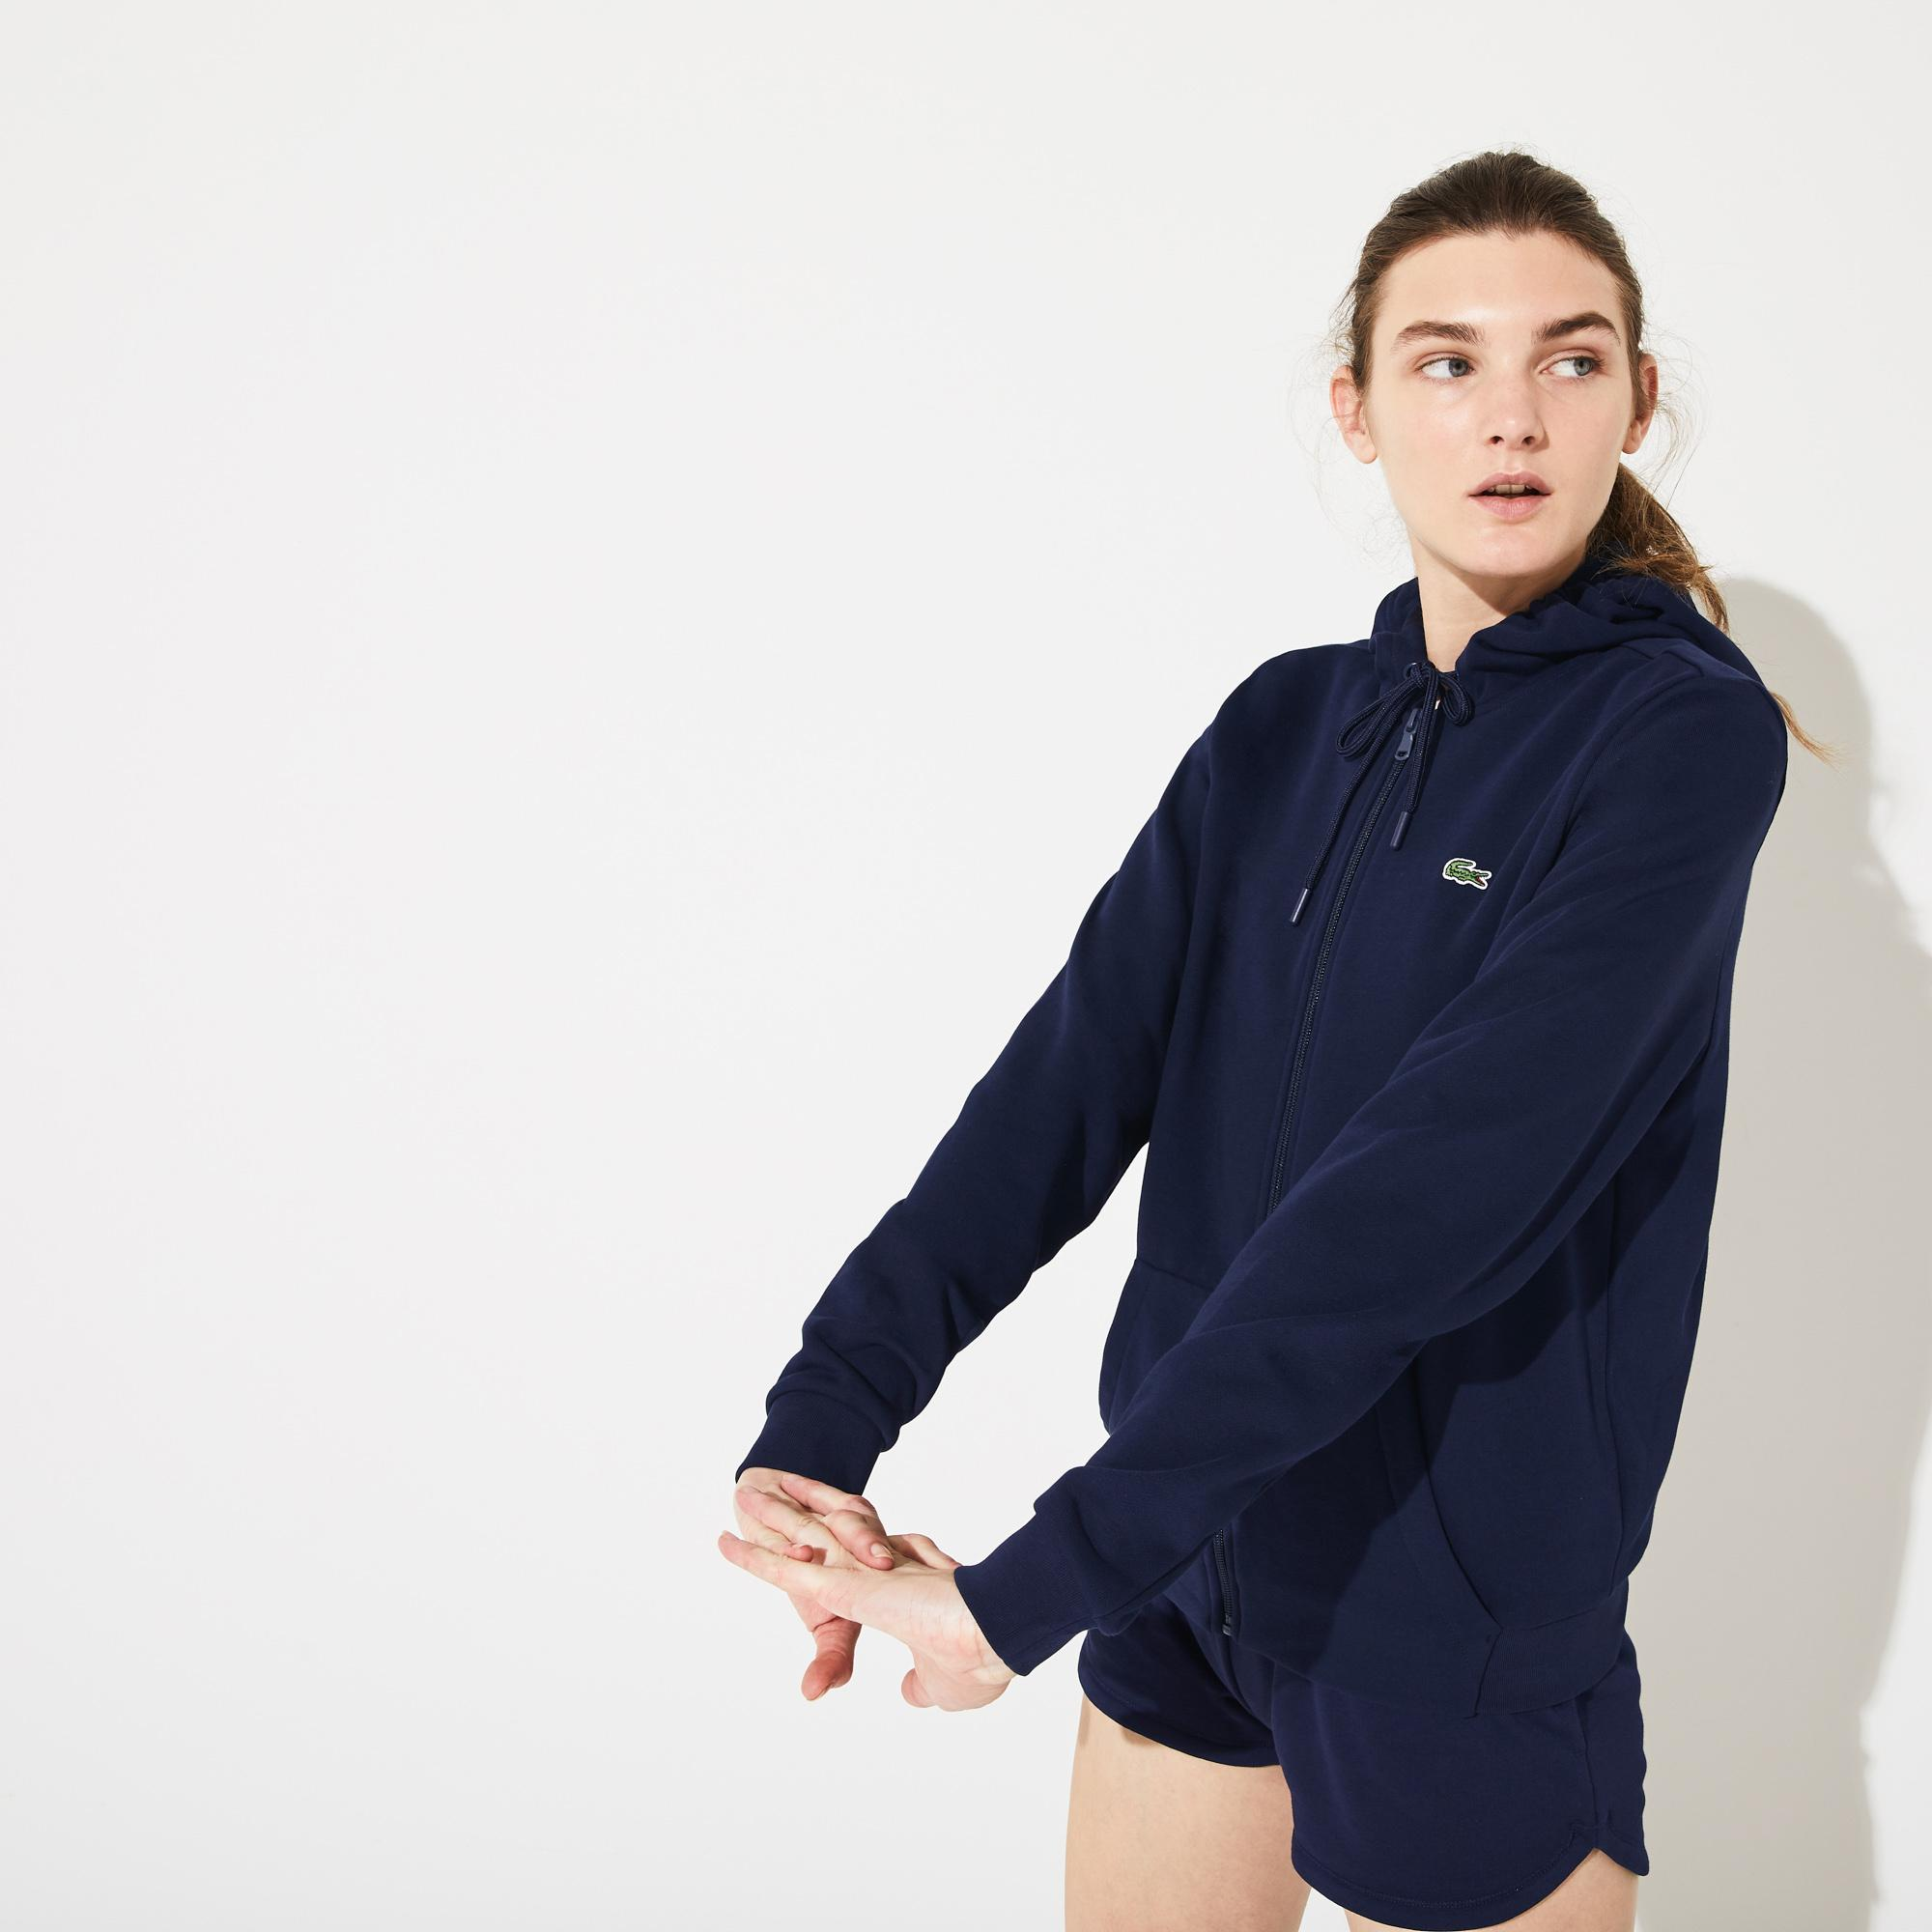 Lacoste Women's Sport Tennis Hooded Zippered Fleece Sweatshirt